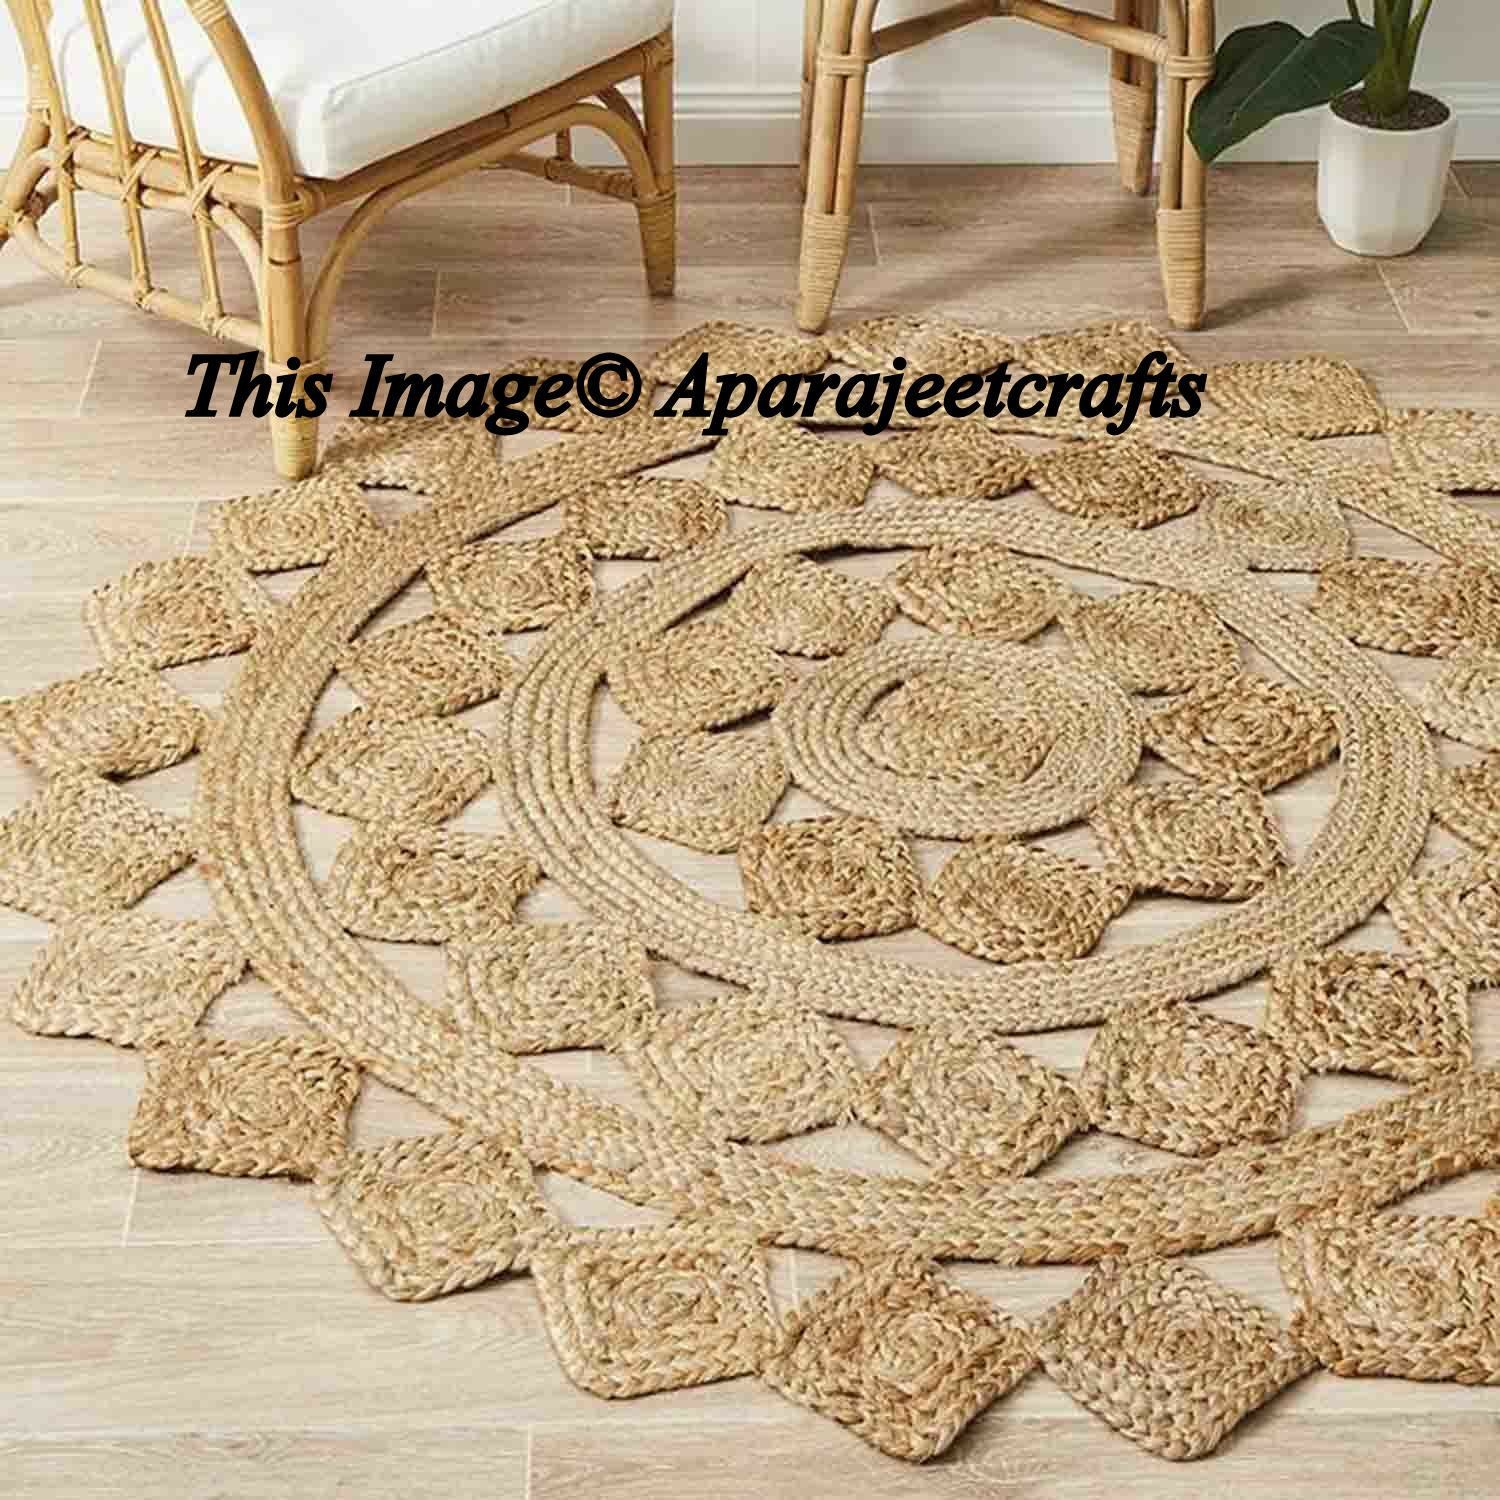 Braided Rag Rug Round Floor Indian Rug Handmade Jute Rug Natural